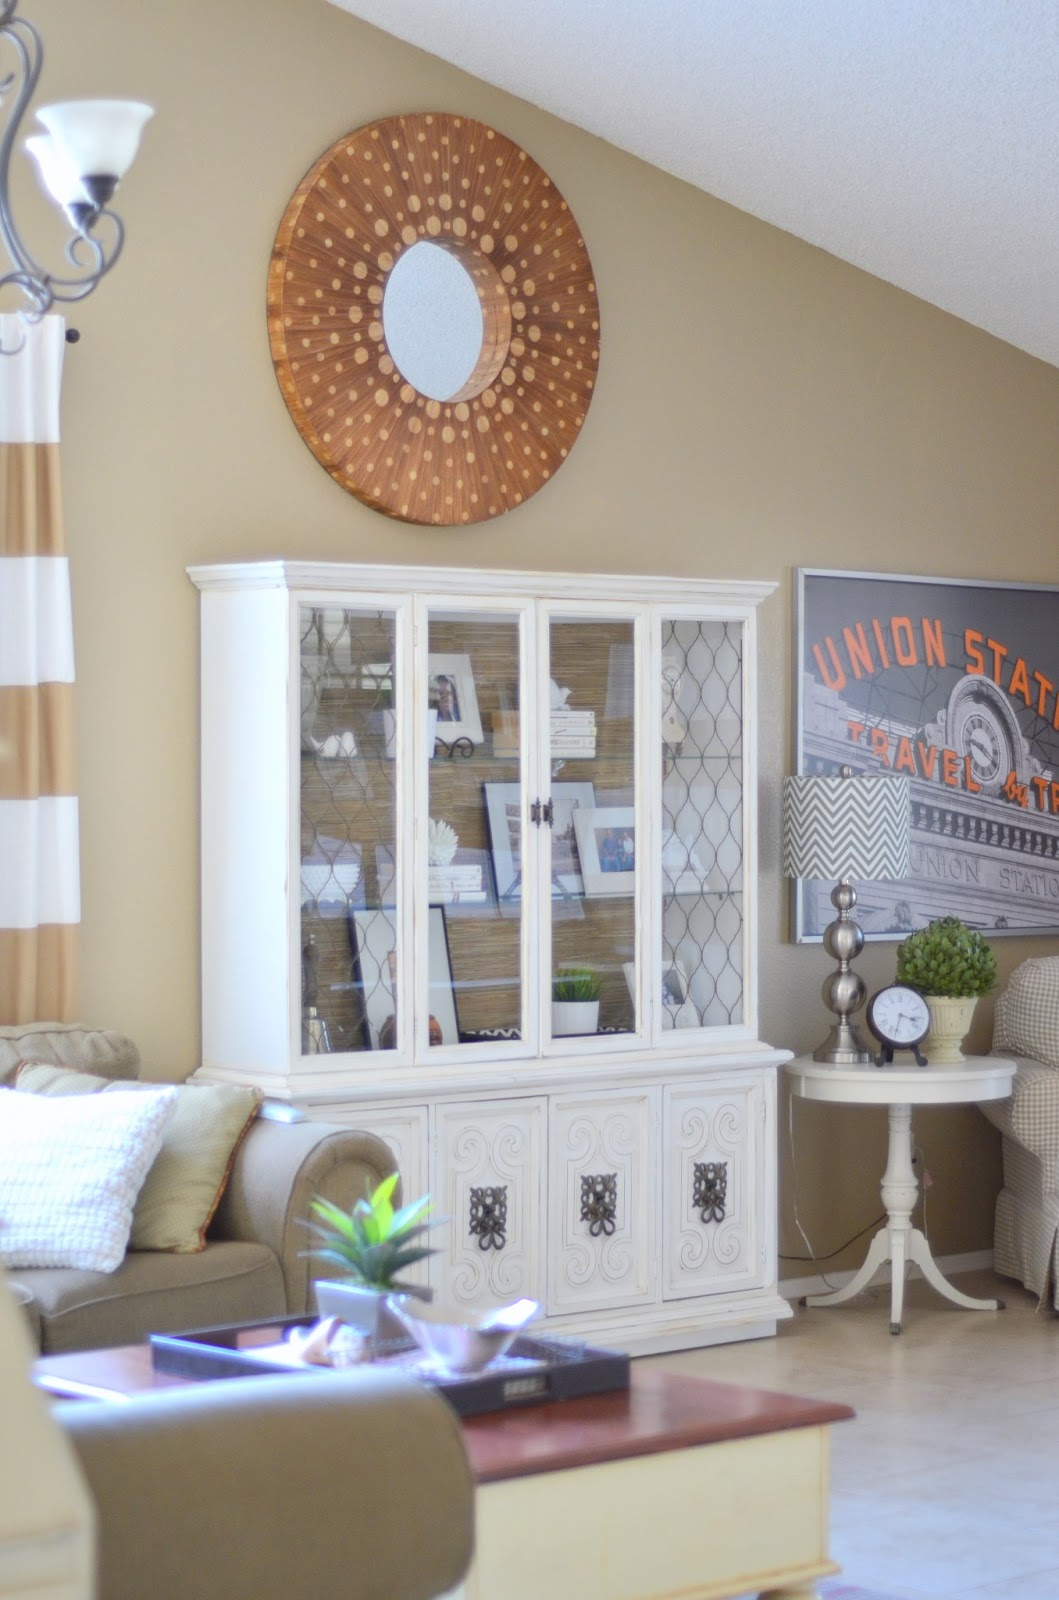 All you need is love and paint day 27 living room hutch - What do you need in a living room ...